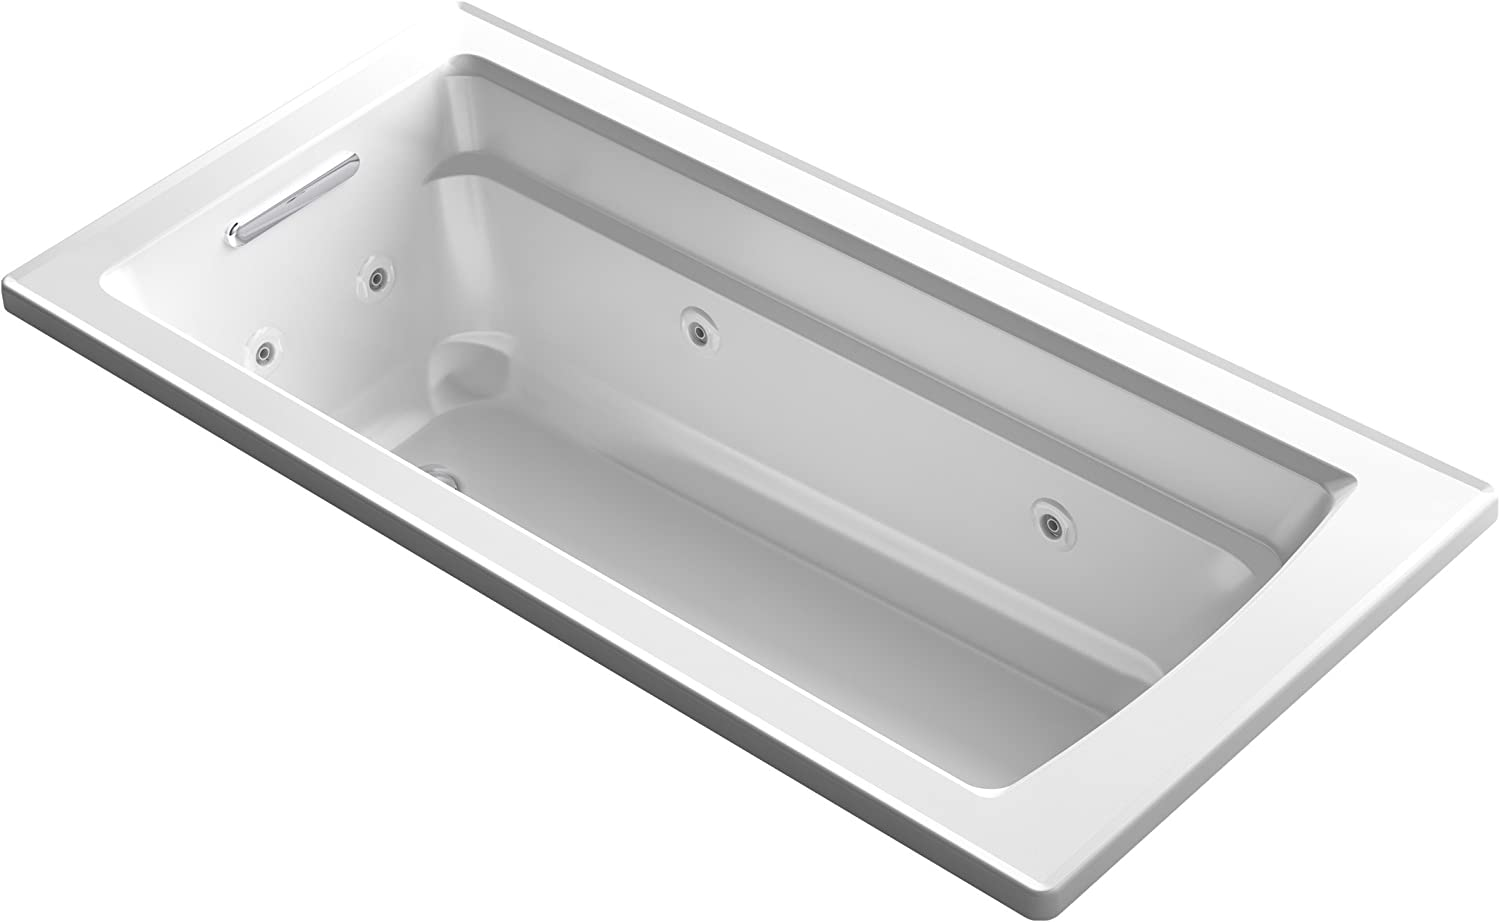 Best Whirlpool Tubs-Best Vintage design: Kohler K-1949-0 Drop-in Whirlpool Tub